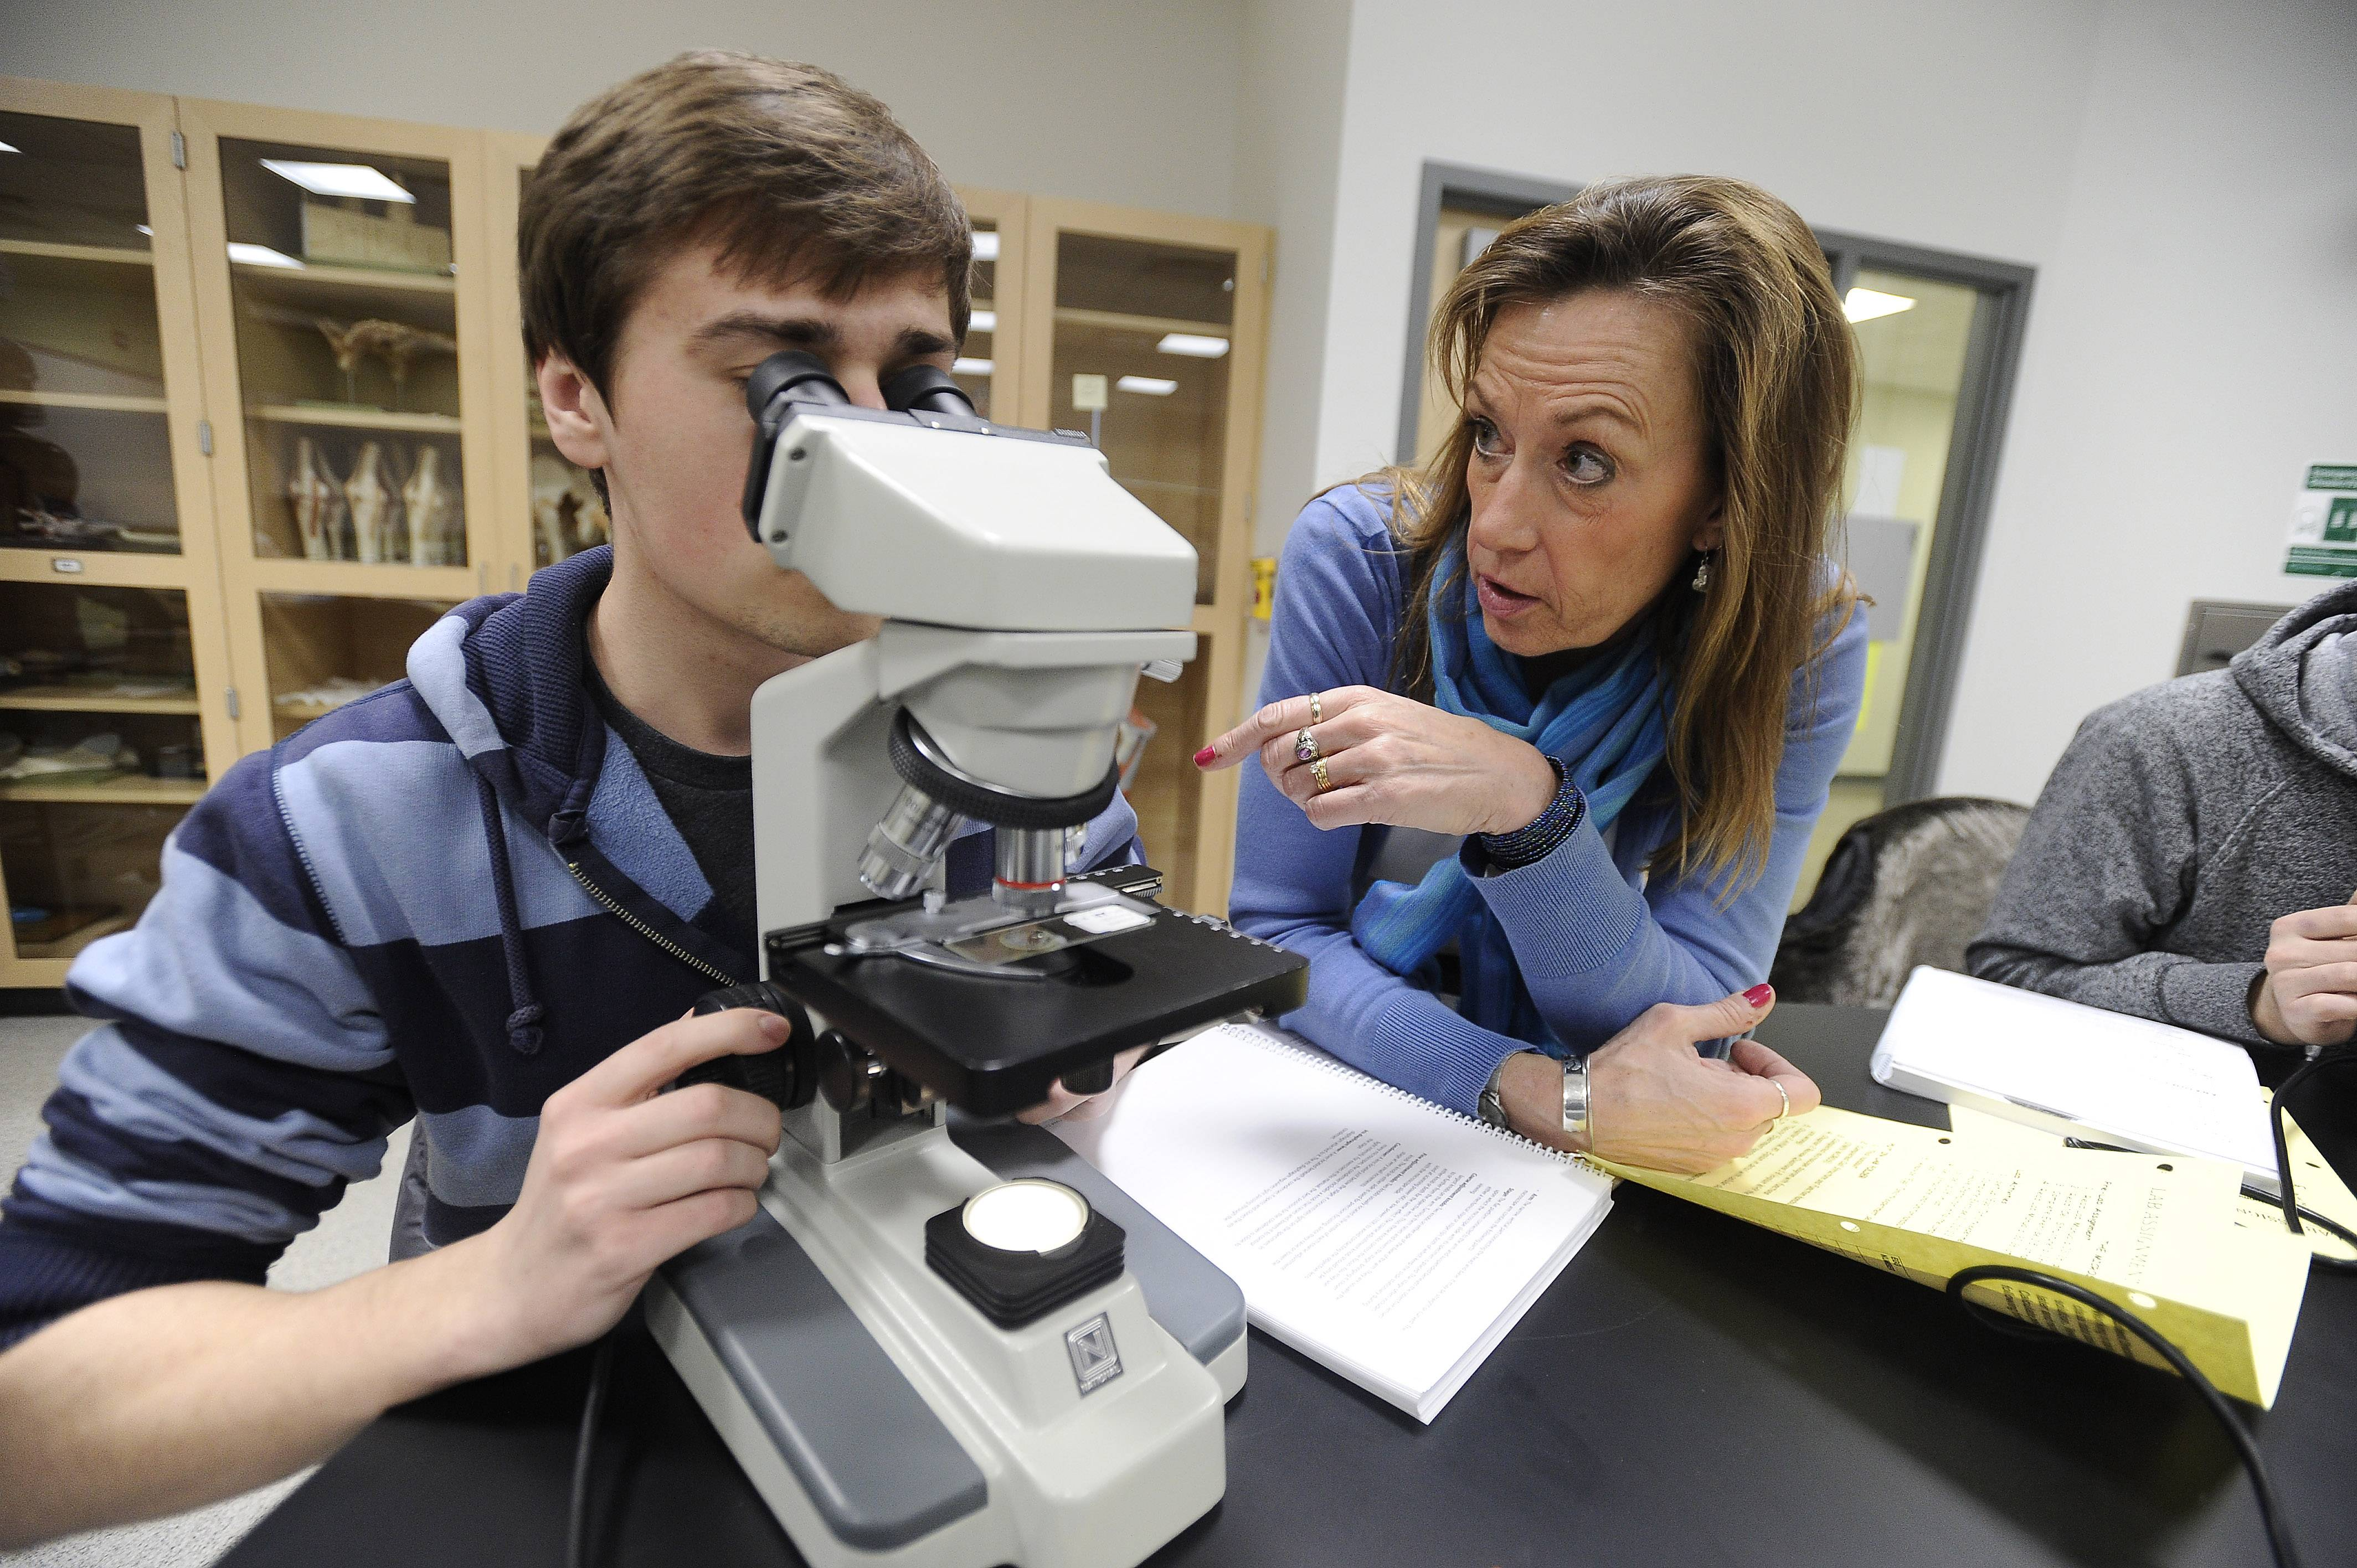 Oakton Biology Professor Kristi Zenchak instructs student Pawel Wiech of Des Plaines during an anatomy and physiology class this week at the new Science and Health Careers Center in Des Plaines.